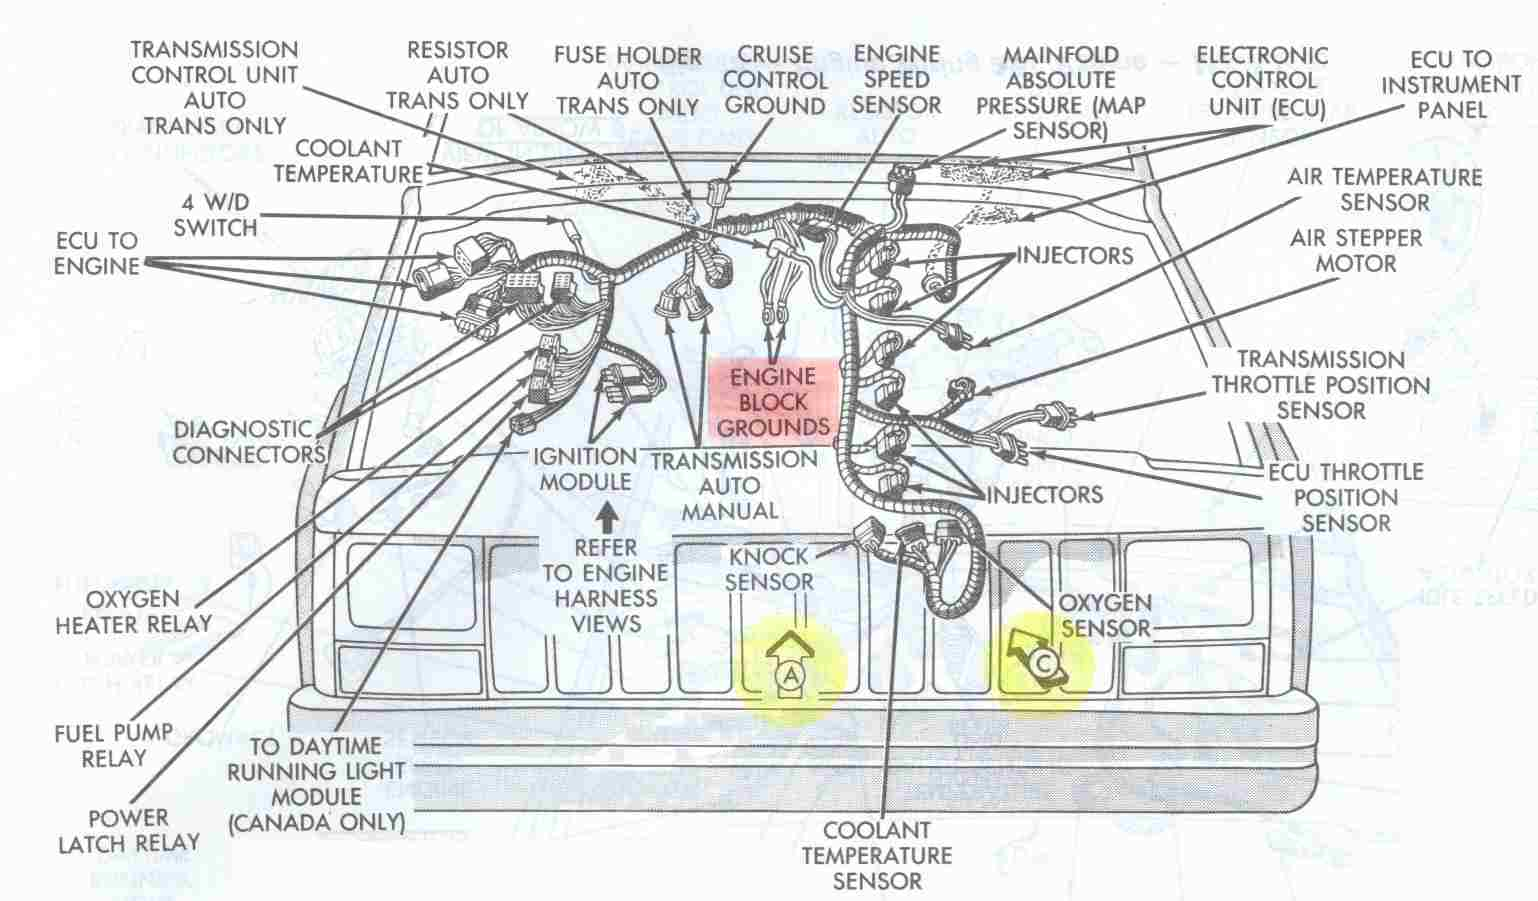 Engine Bay schematic showing major electrical ground points for 4.0L Jeep Cherokee engines.